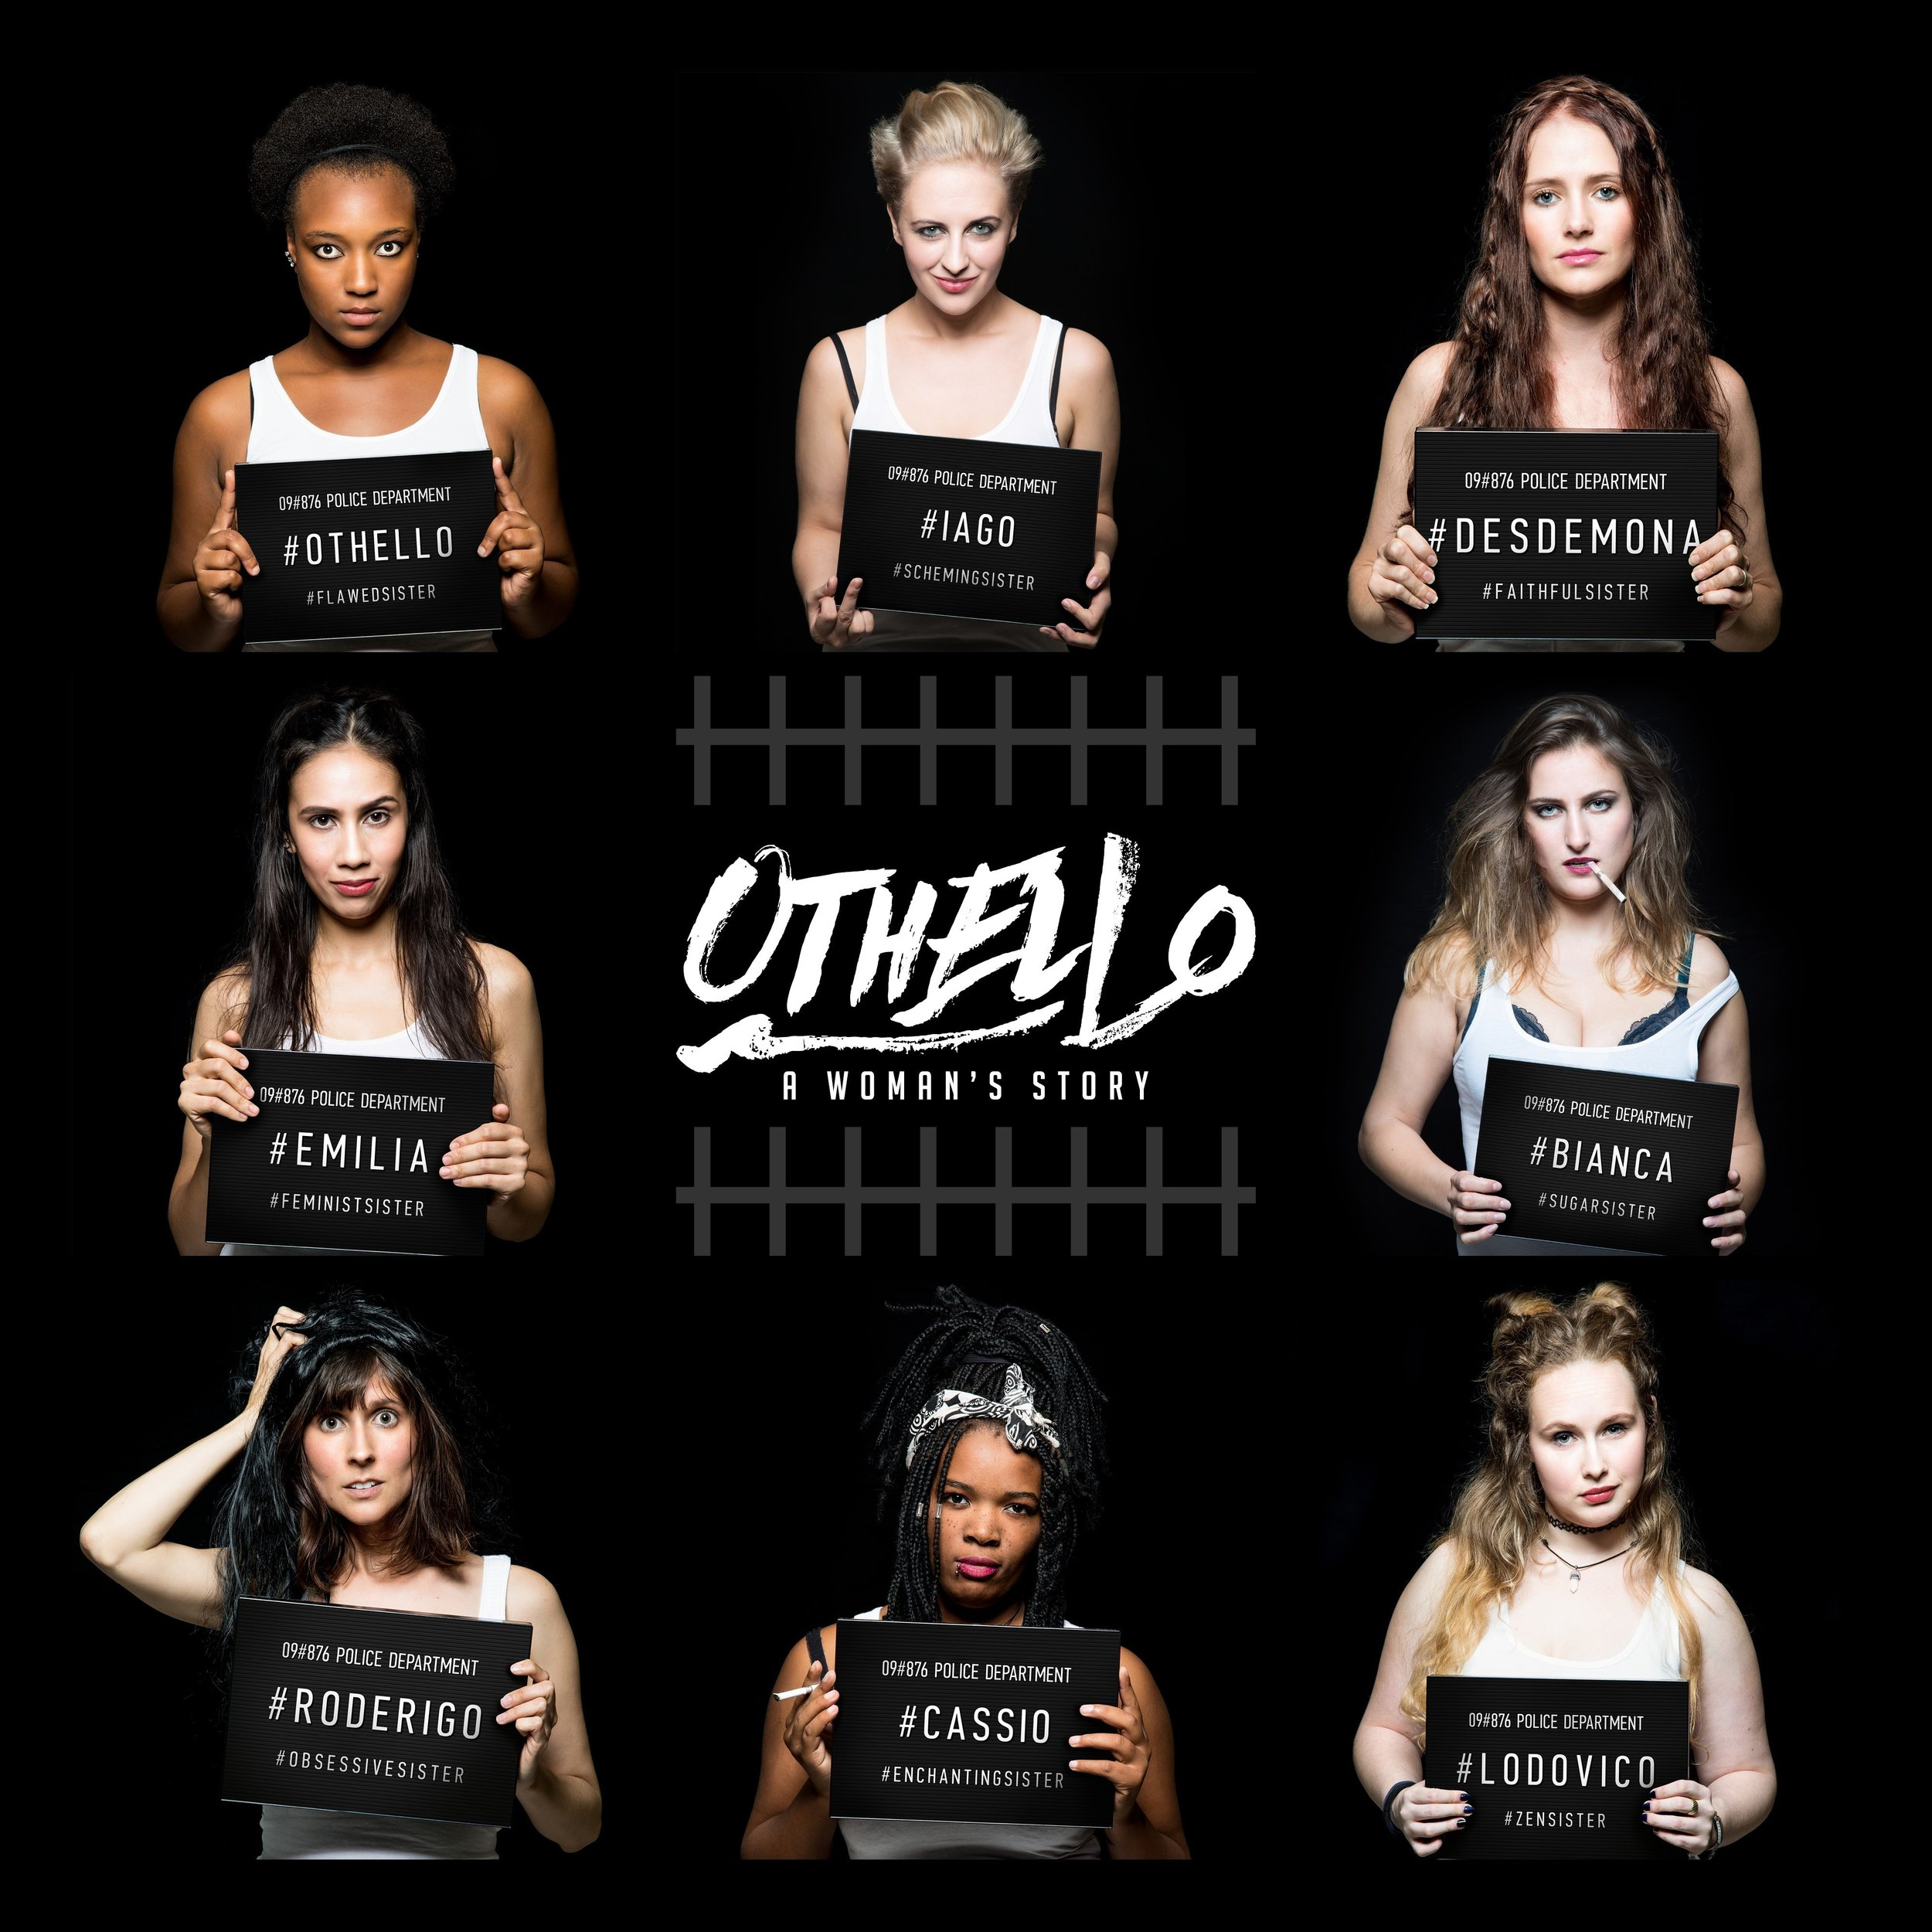 Othello: A Woman's Story, is a modern days South African LGBTQ adaptation of the Shakespeare tragedy. Critically acclaimed, the play was featured in South Africa's leading newspapers including  Cosmopolitan Magazine ,  Cape Times  and  The Argus . Marine George plays Bianca as well as The Duke, two supporting characters.